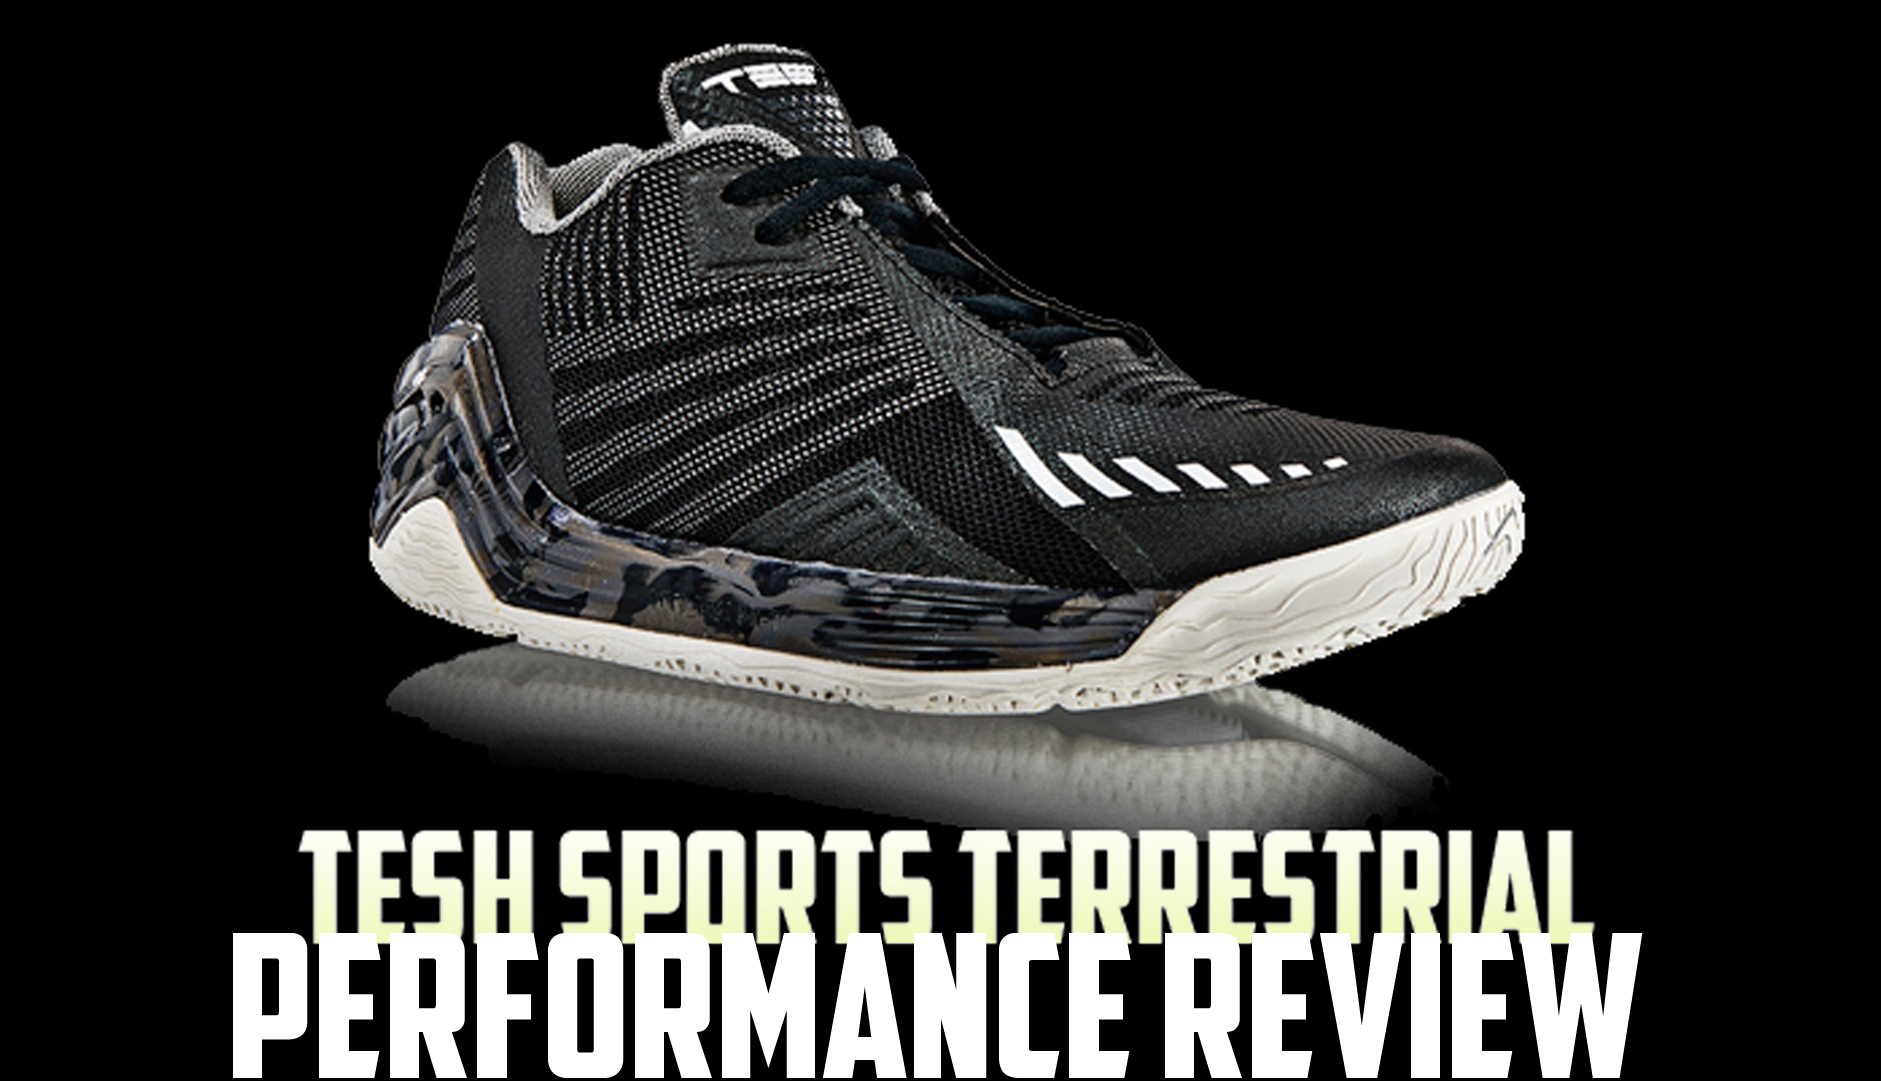 TESH Terrestrial Performance Review Main